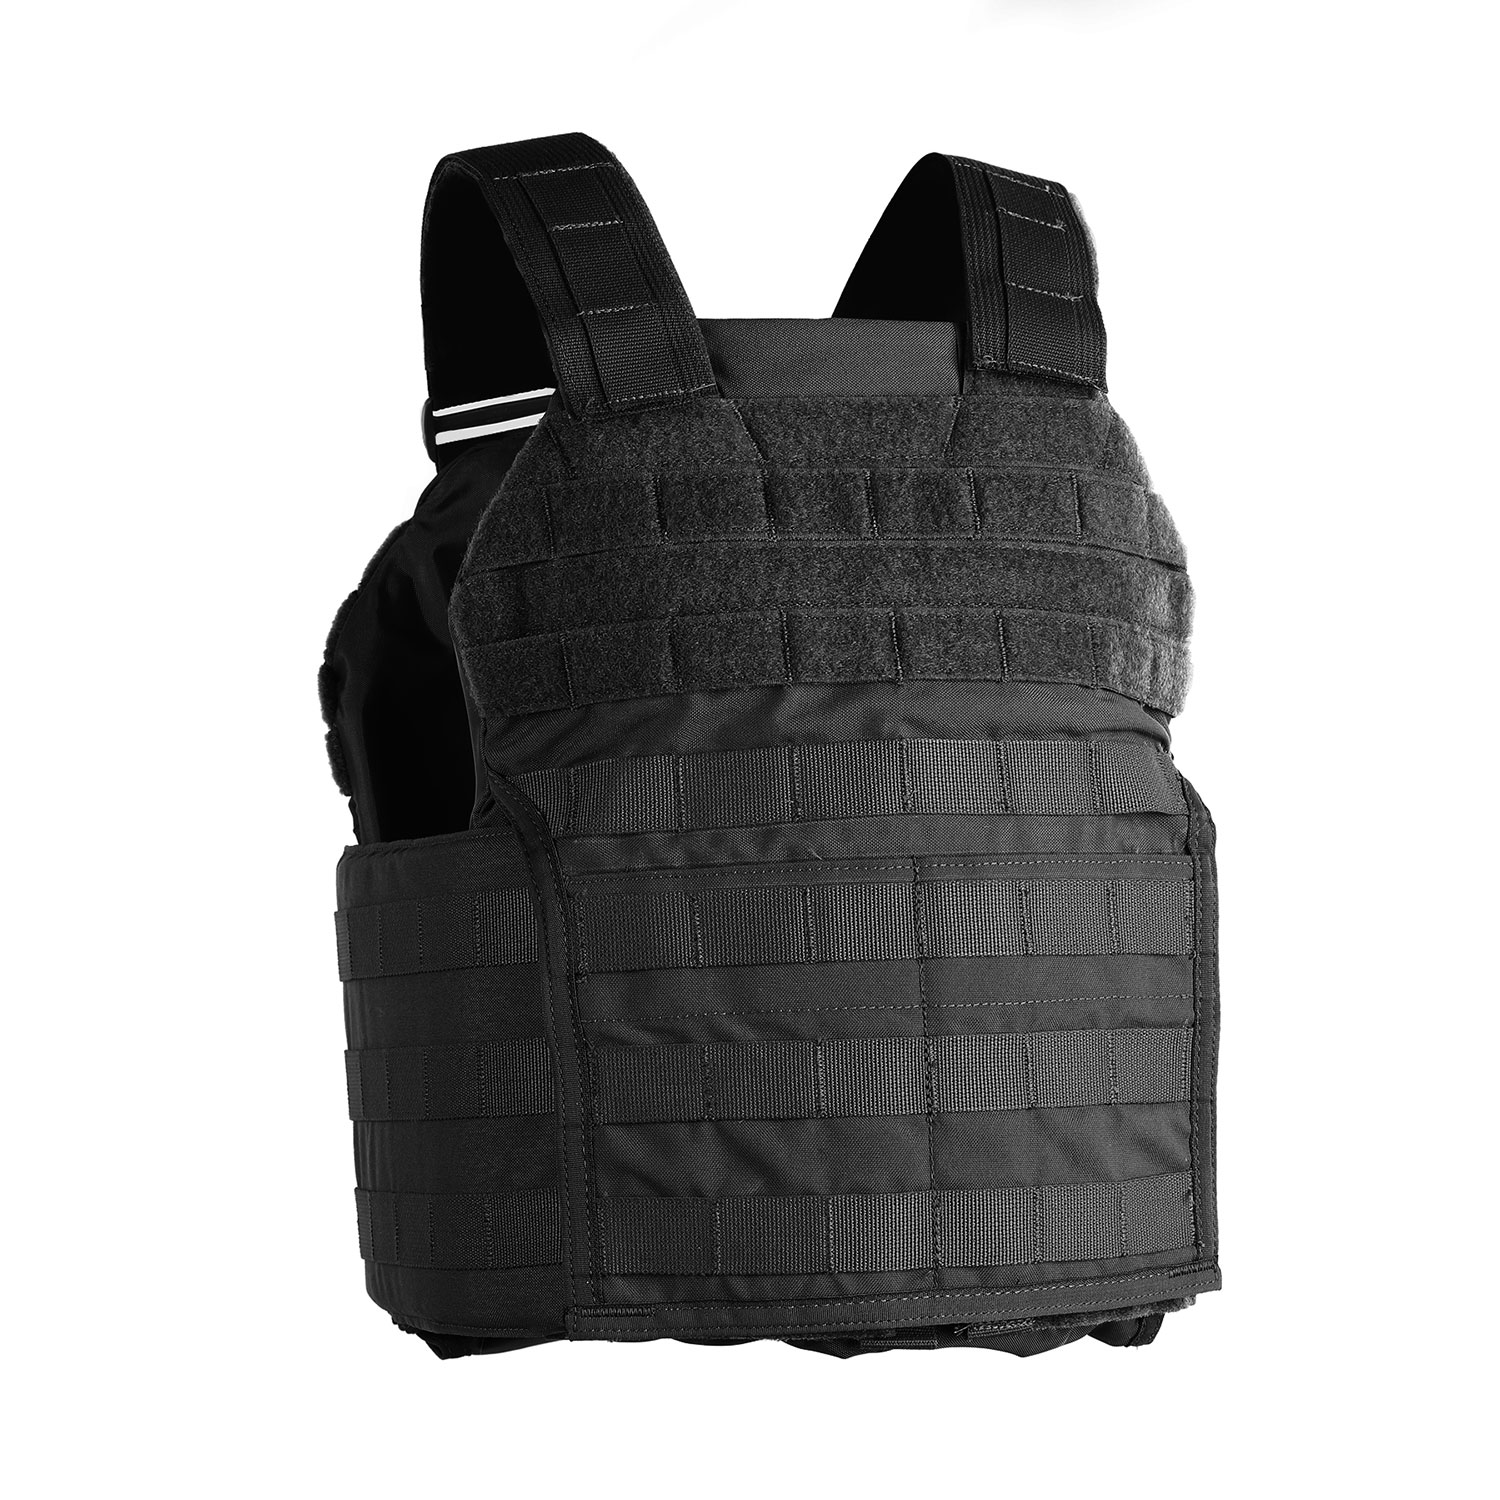 Galls GTAC Plate Carrier